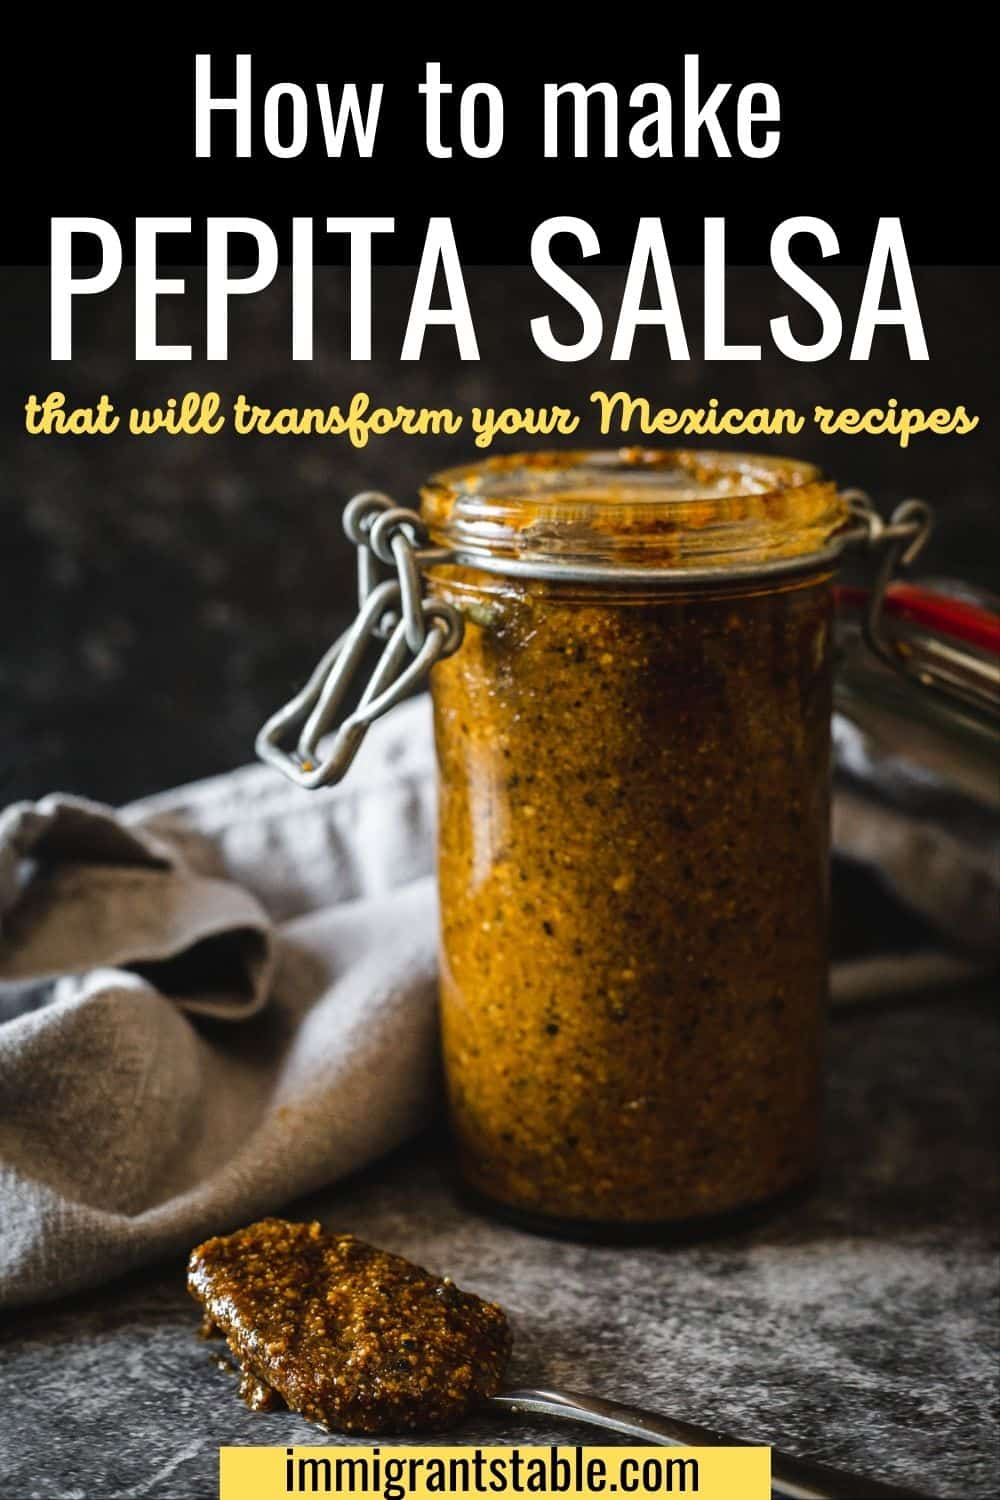 How to make Pepita salsa that will transform your Mexican recipes